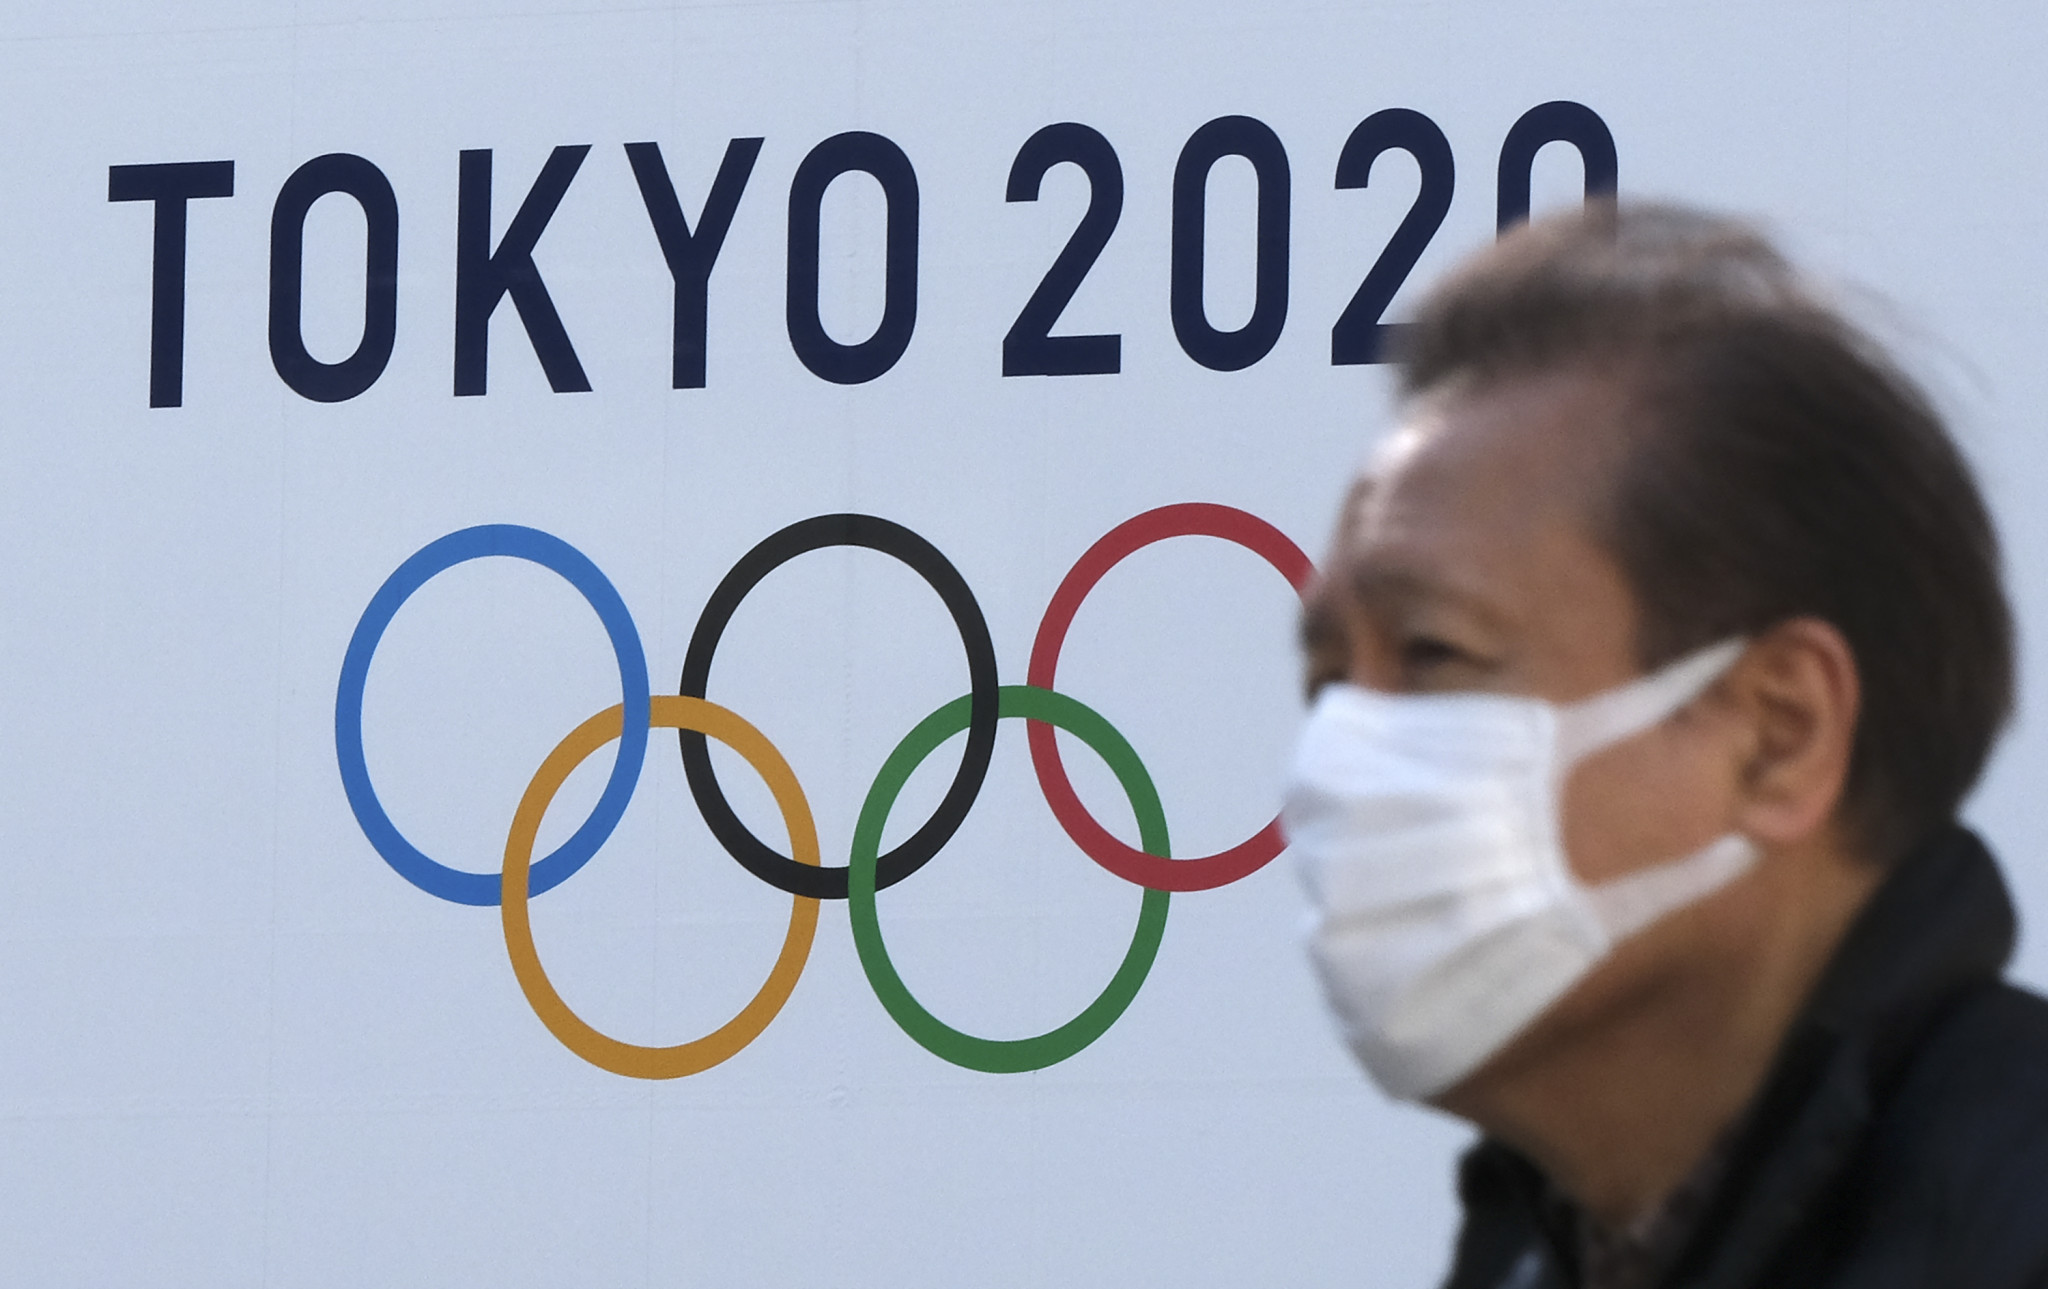 Around 1,000 Tokyo 2020 volunteers quit in February due to sexism row and COVID-19 concerns